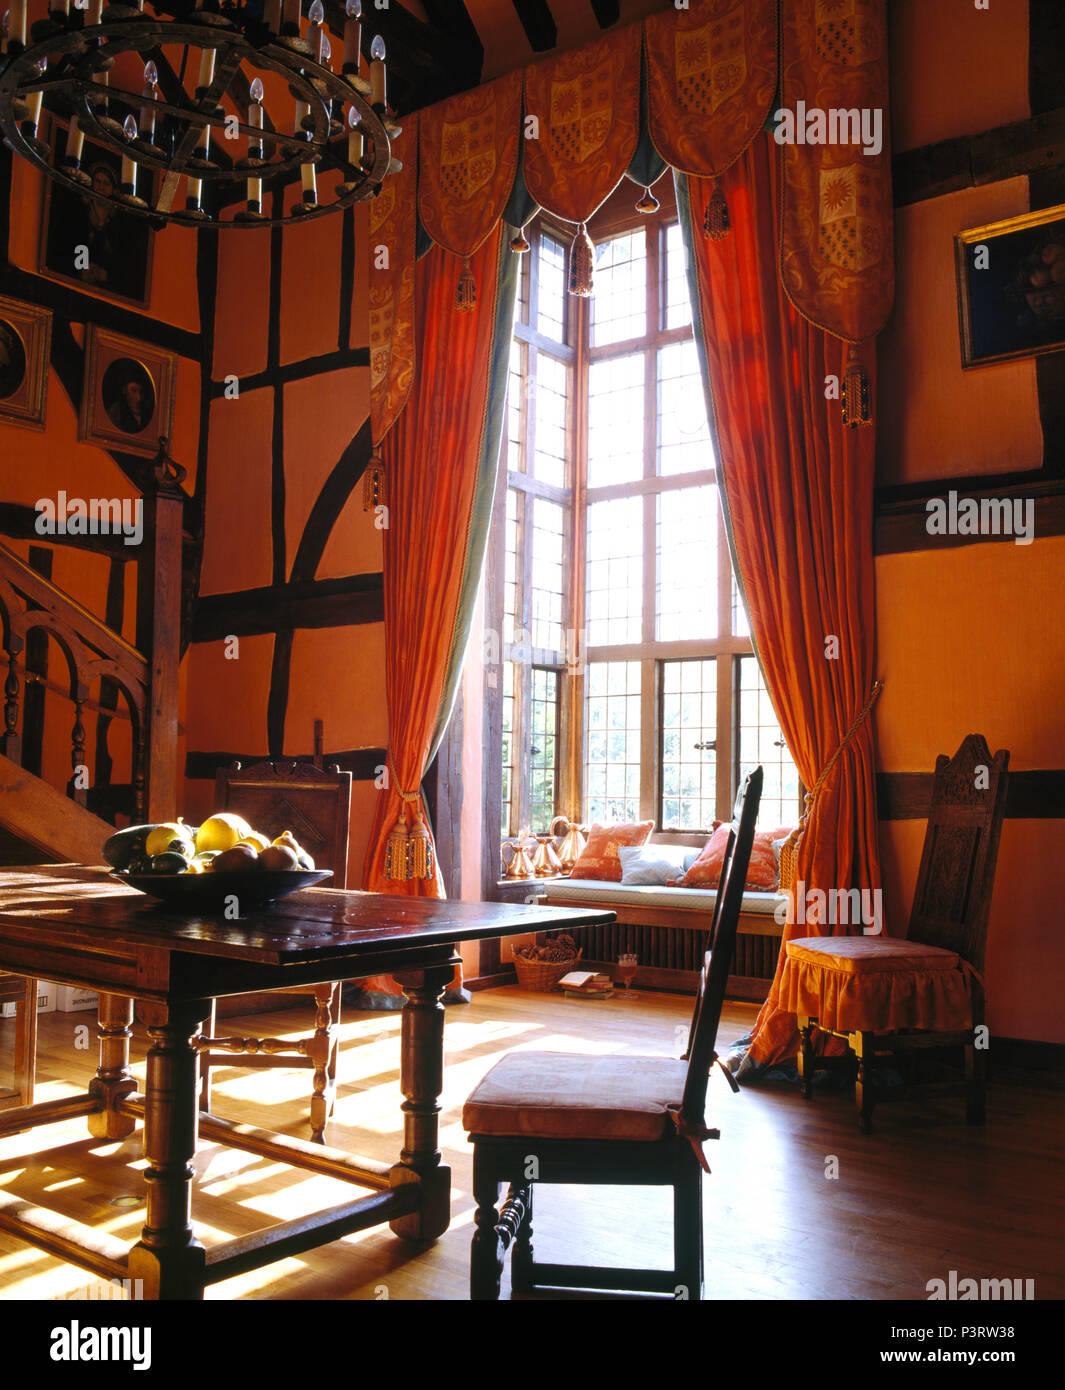 Orange Red Curtains At Tall Windows In Large Country House Dining Room With  Antique Furniture